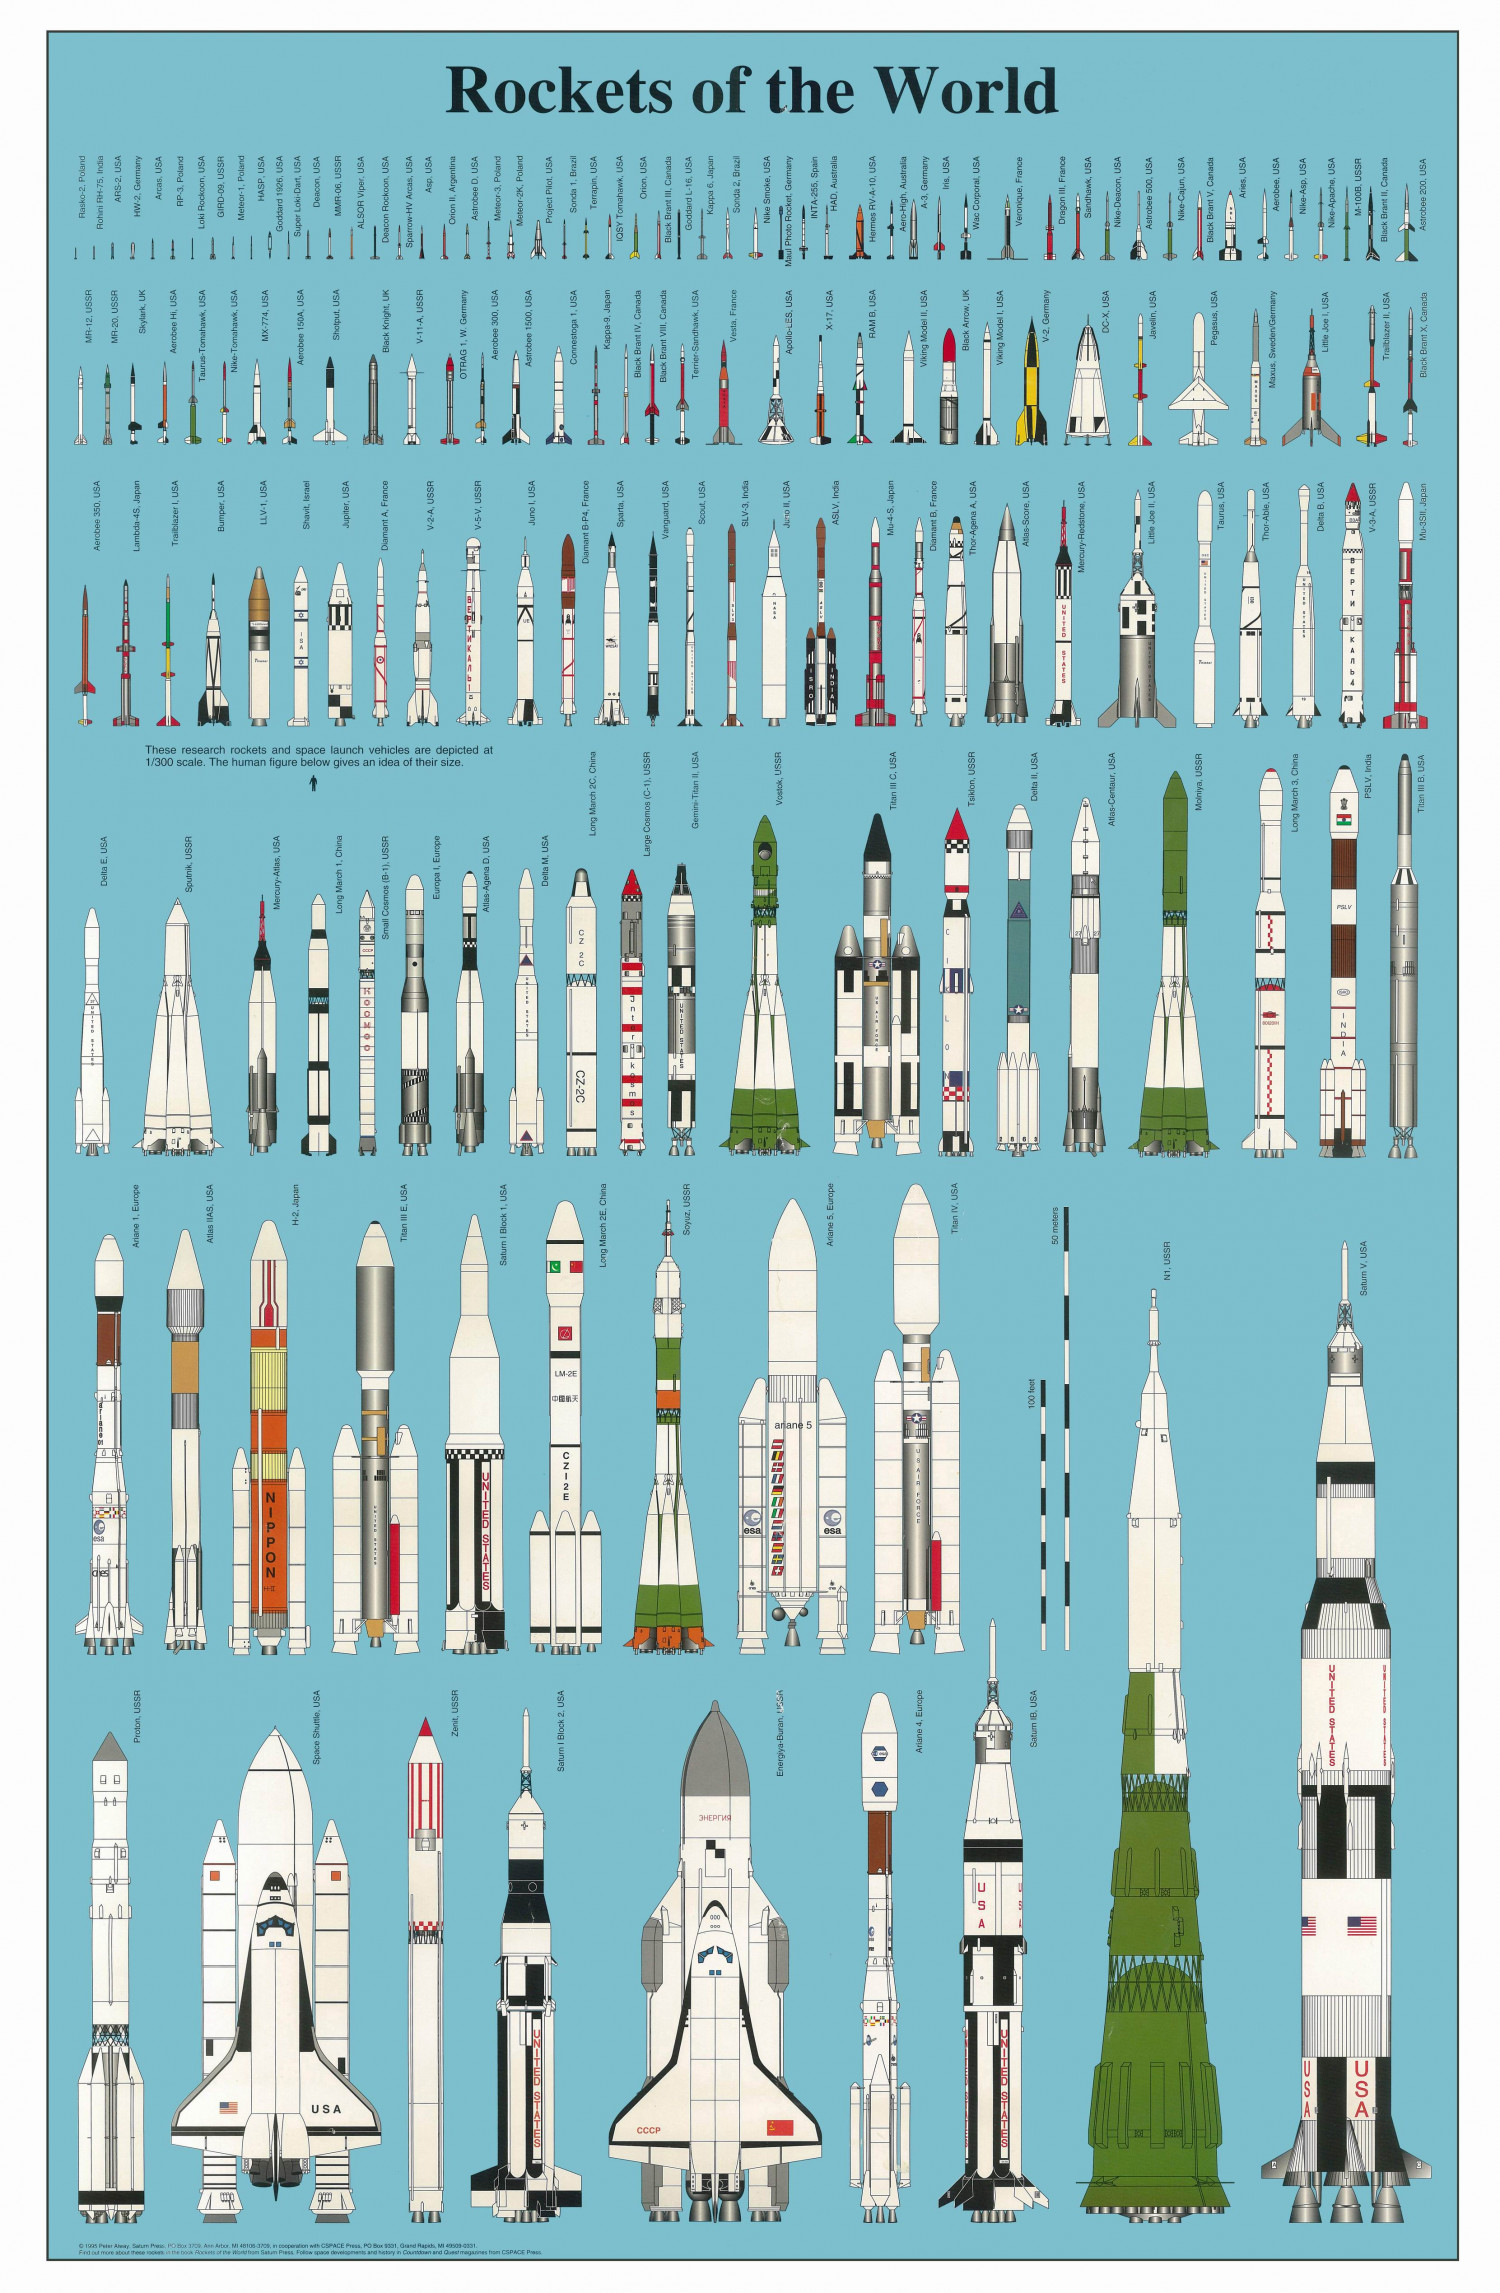 That's a Lot of Rockets Infographic